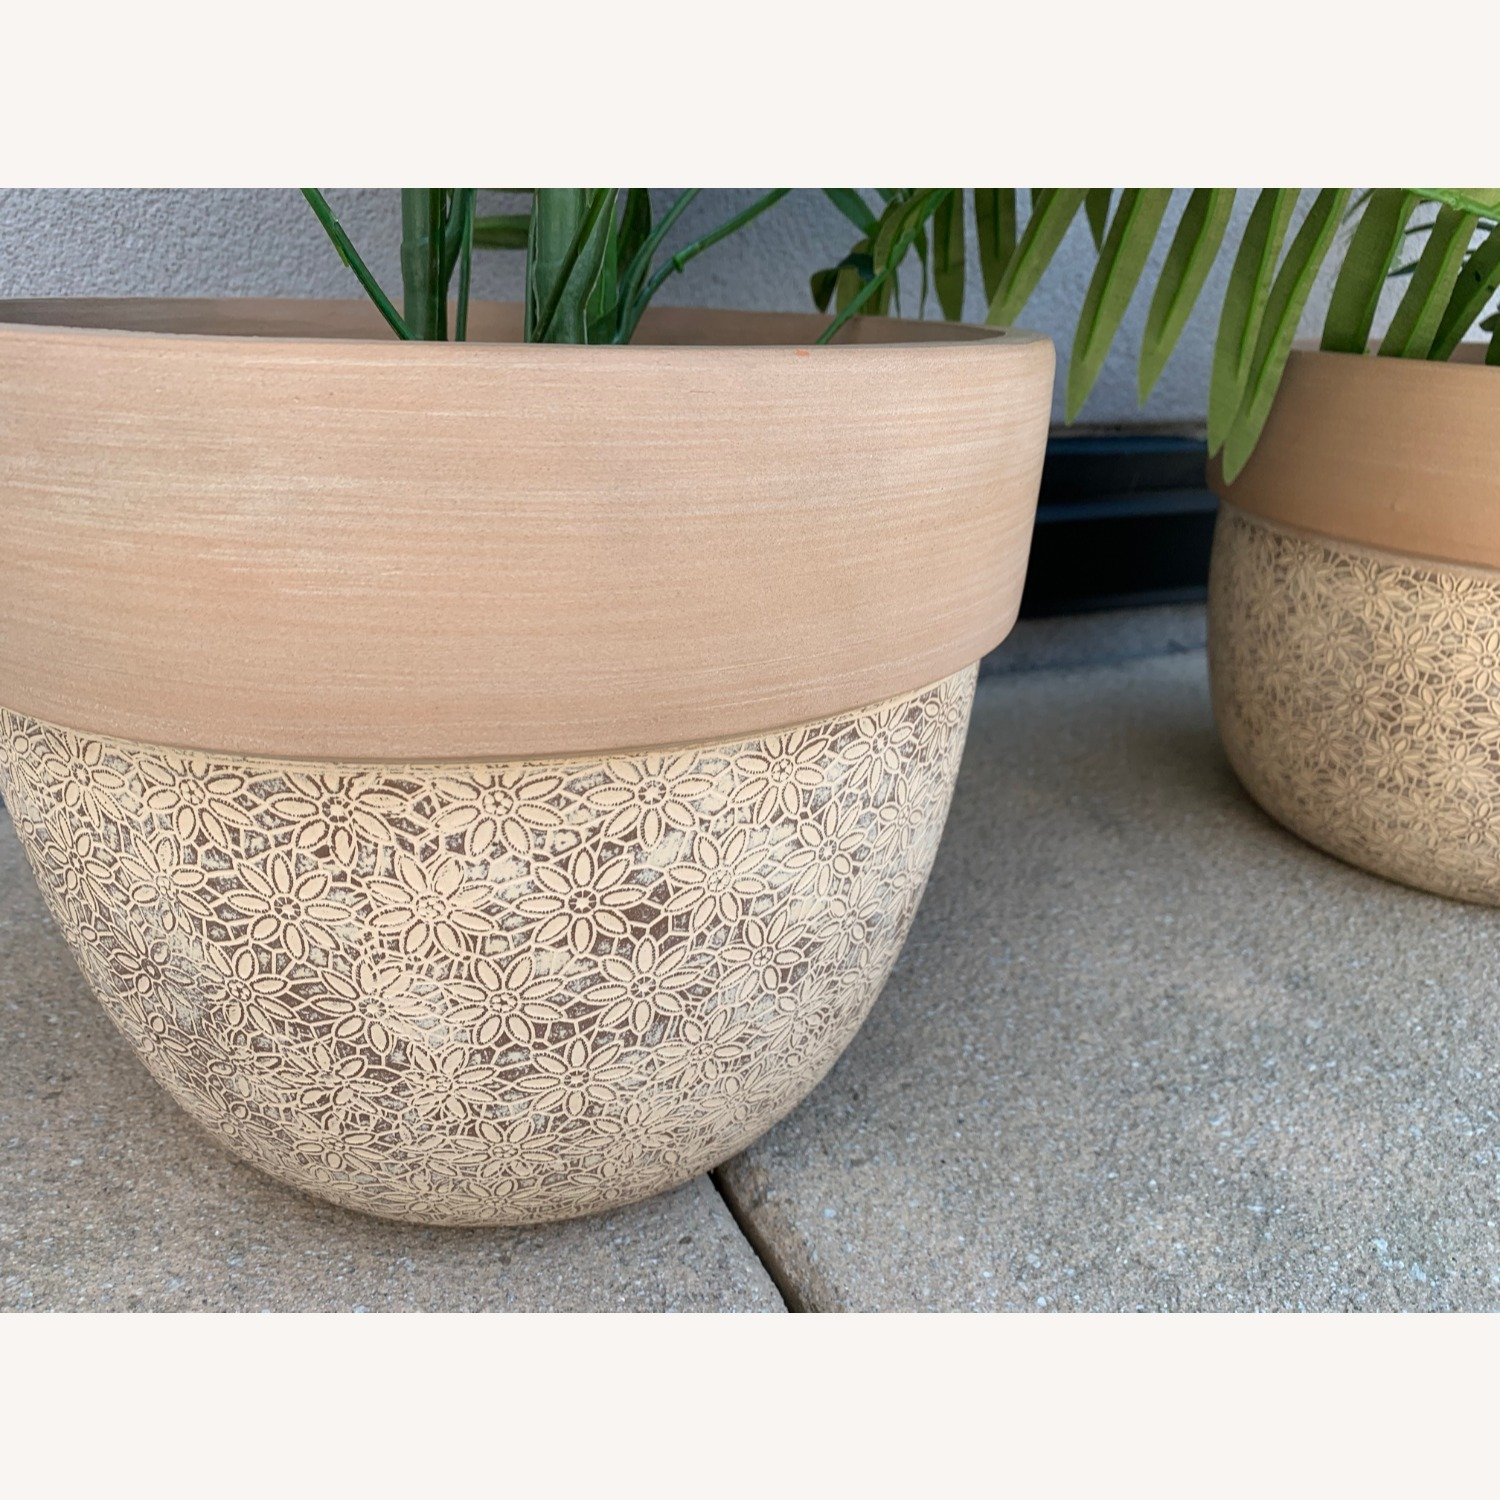 Ceramic Planters With Etched Flowers + Faux Palms - image-3